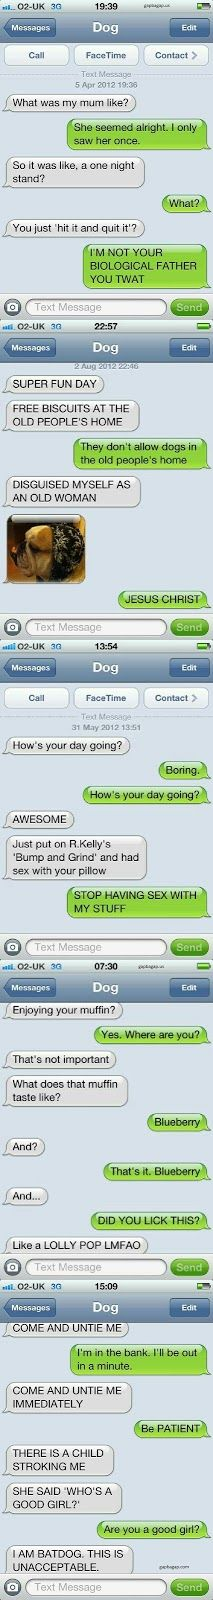 Top 5 Hilarious Text Messages ft. #Funny #Dogs